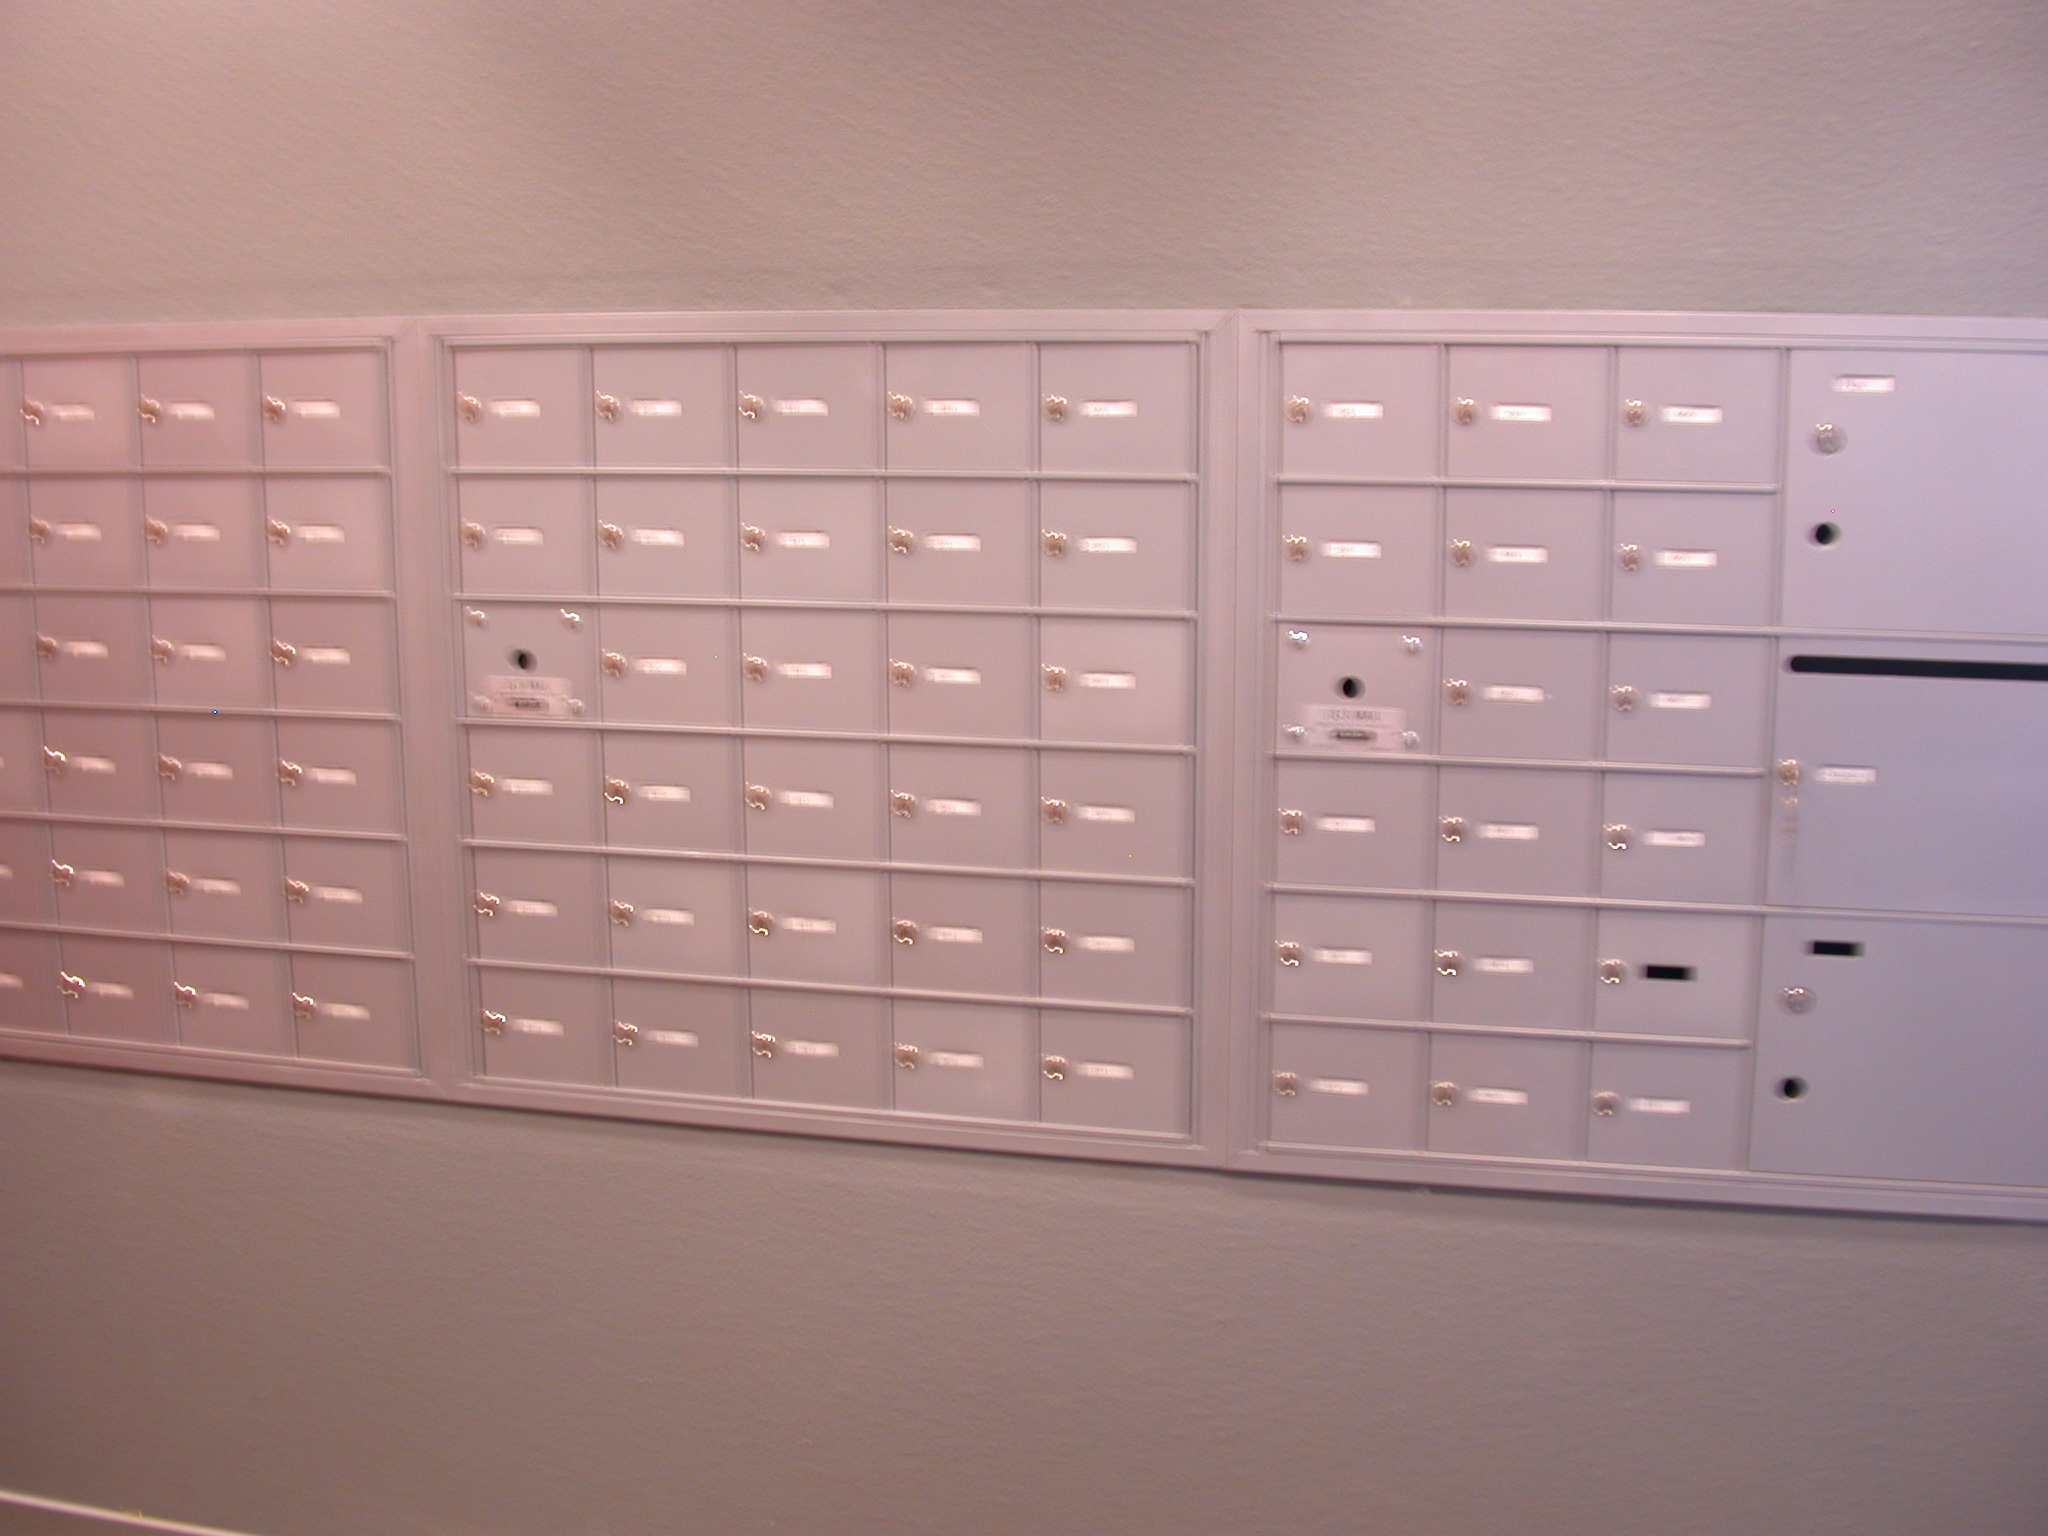 Mailboxes in Front Lobby of Moms Condominium Building